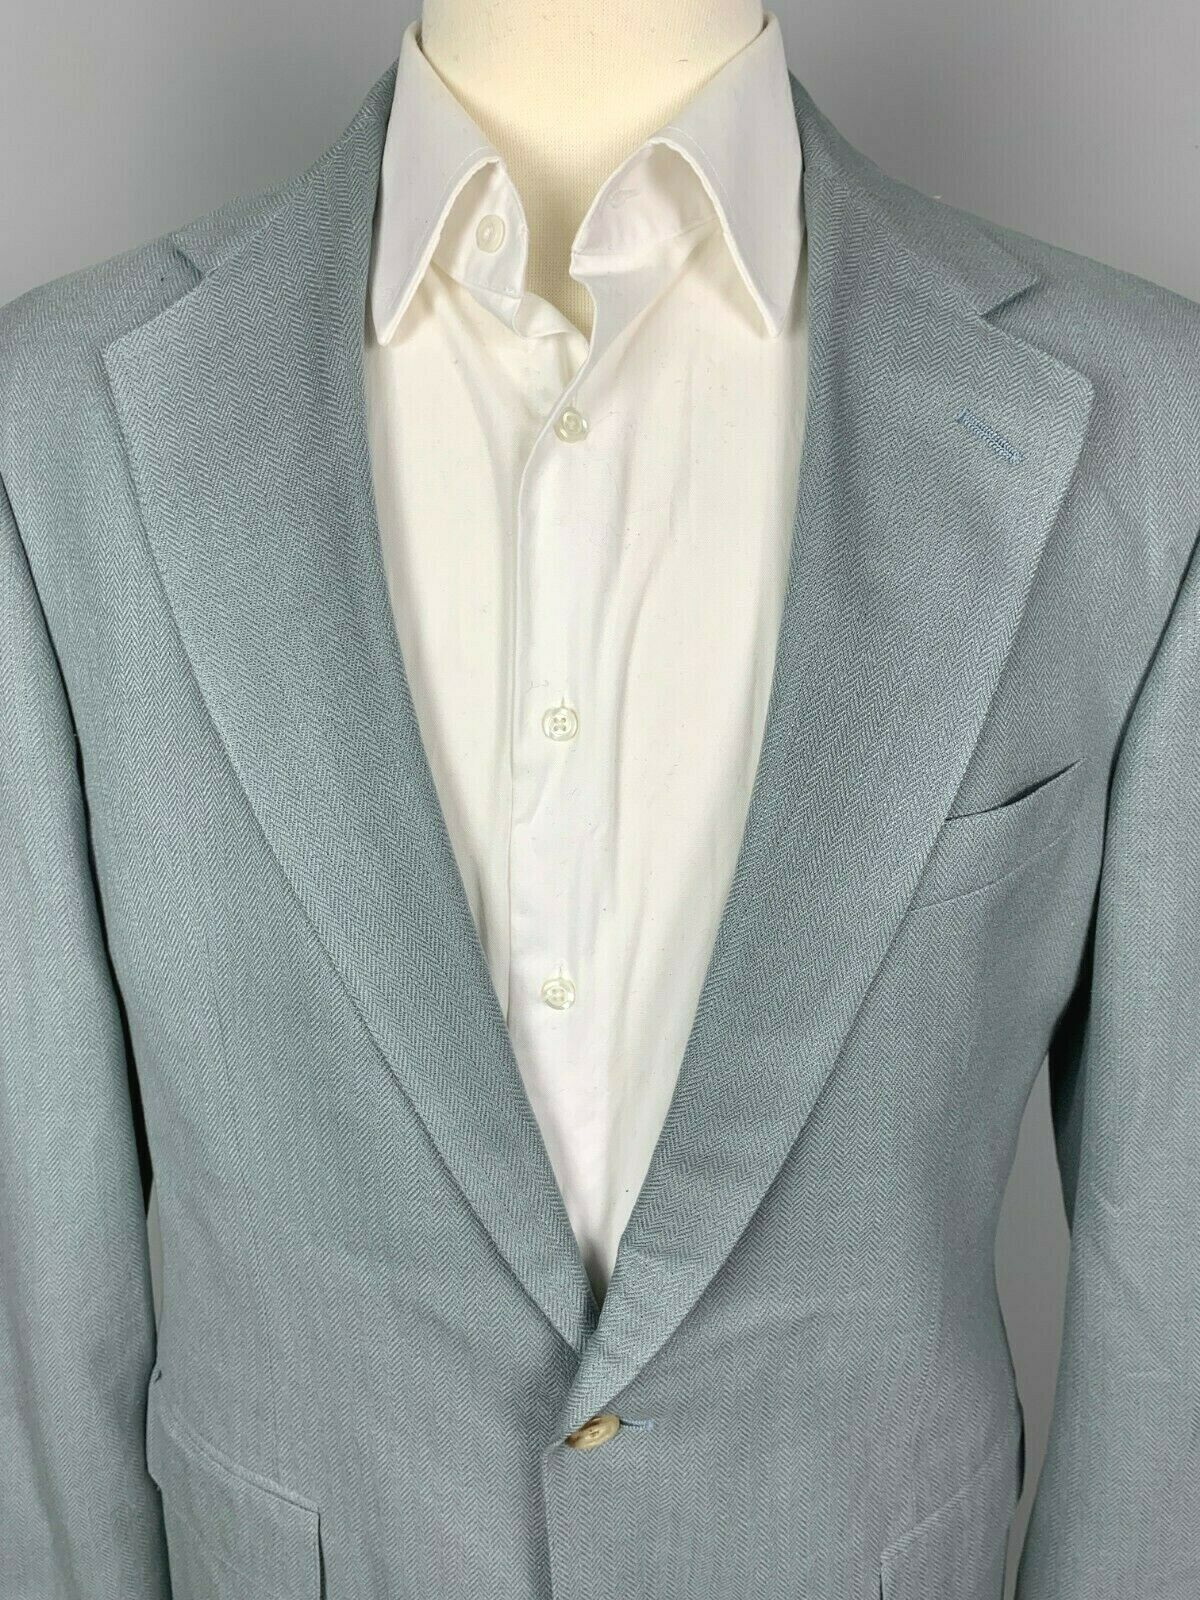 New vintage Polo Ralph Lauren 100% Silk Herringbone Light bluee Sport Coat 40 L